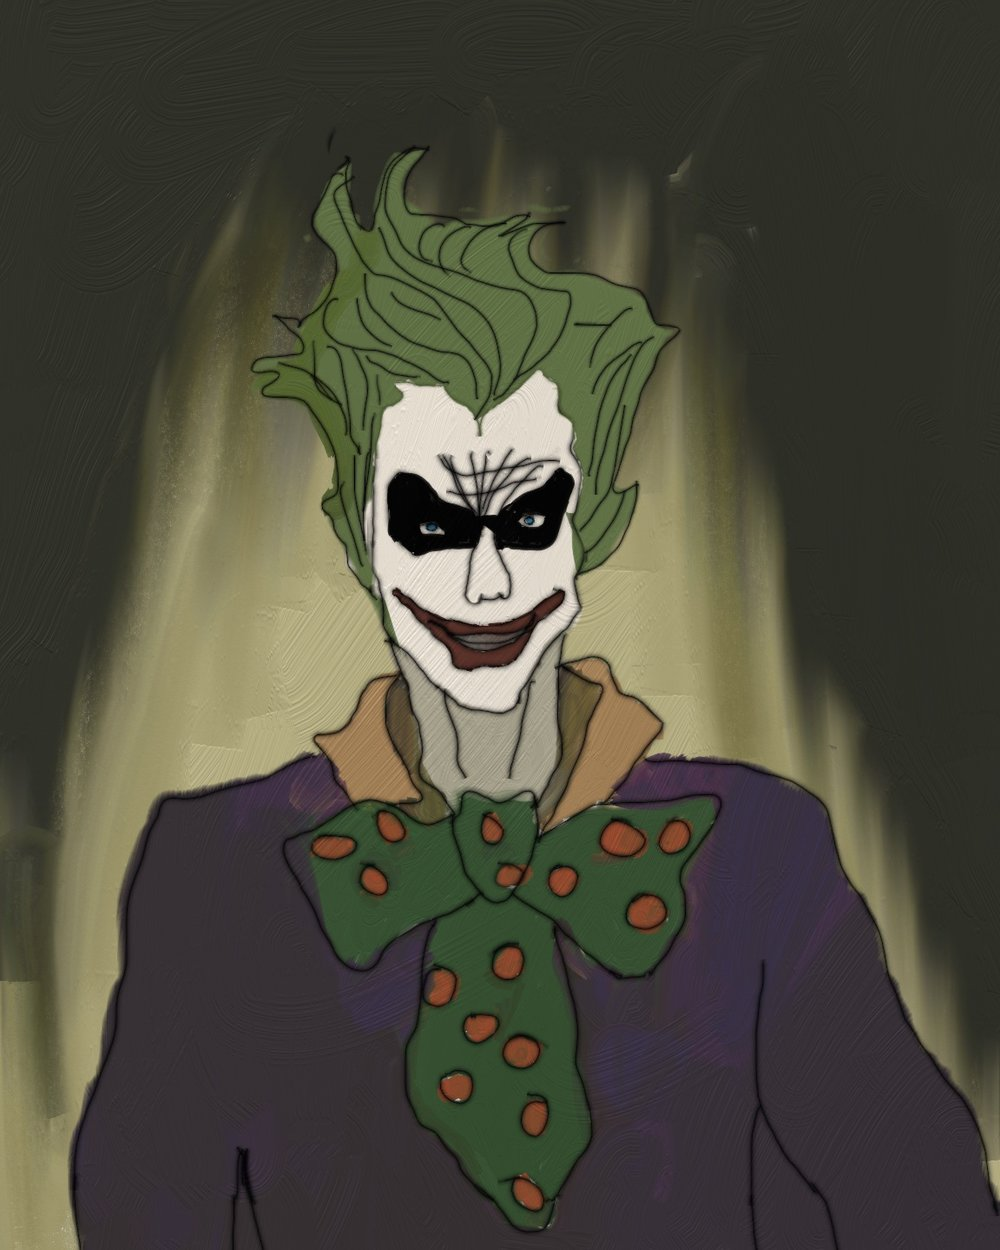 jokerfinal copy.jpeg